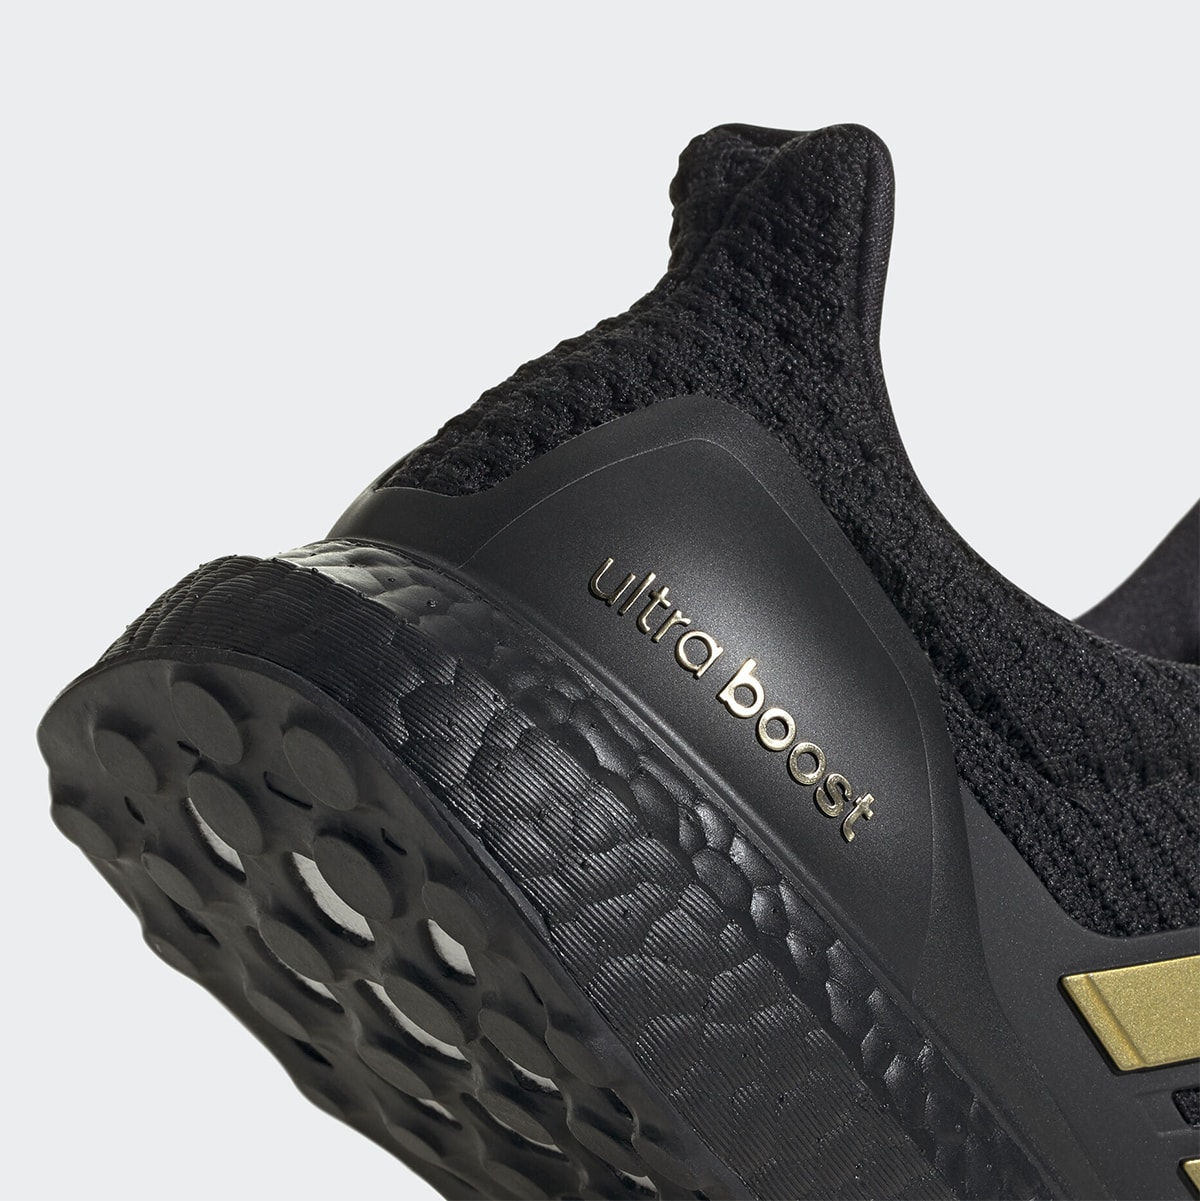 adidas Ultra BOOST DNA in Black/Gold